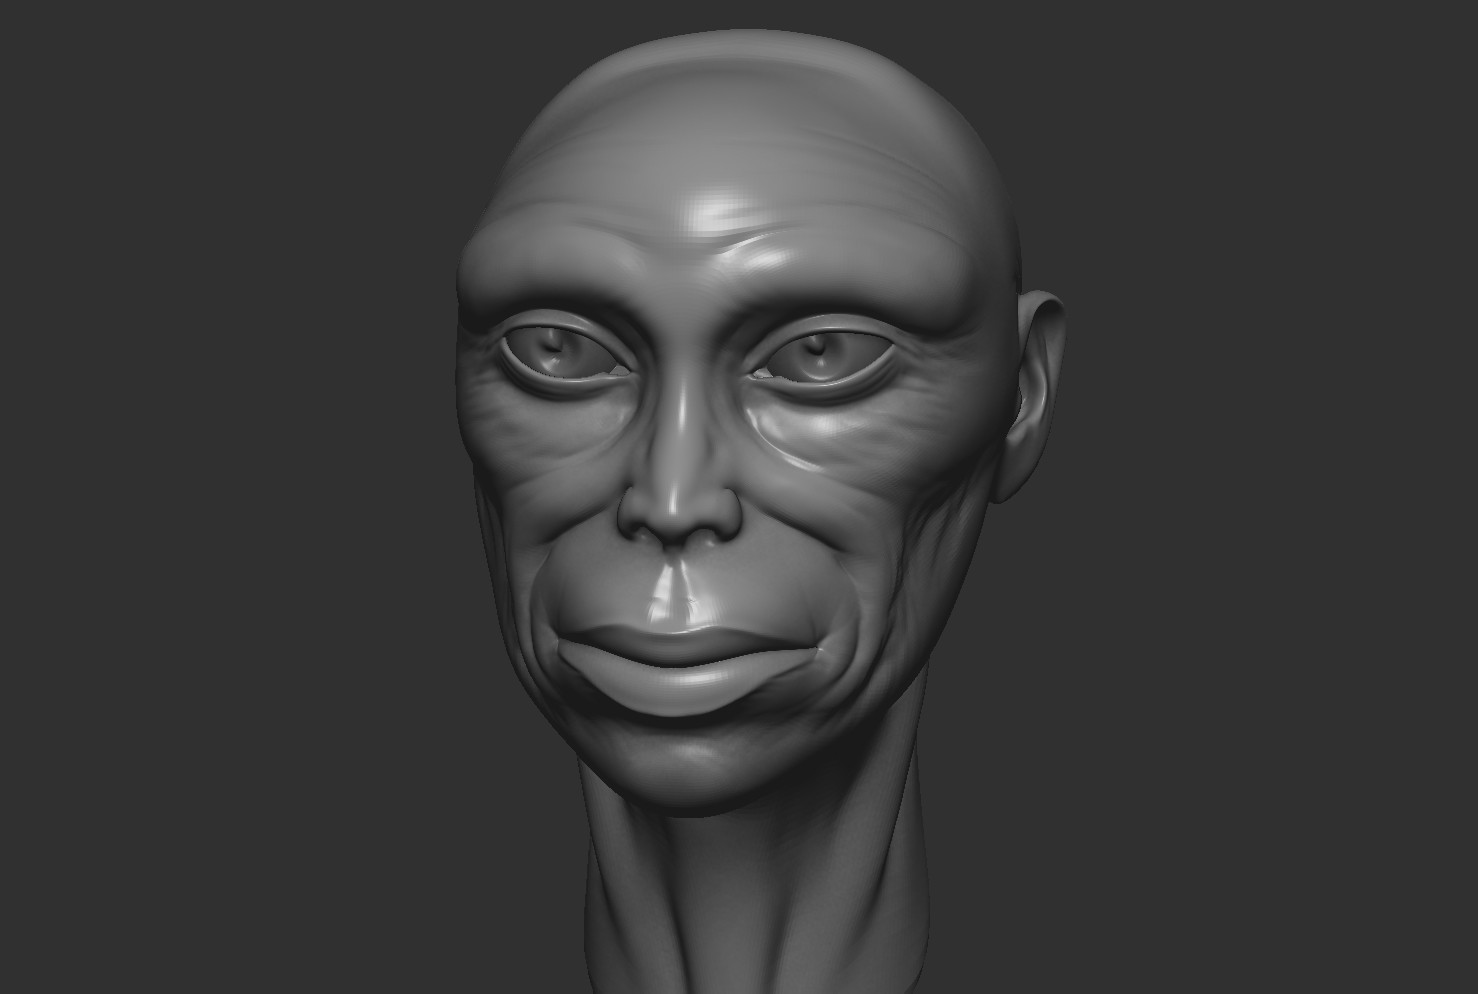 Another 1 hour sculpt in ZBrush.